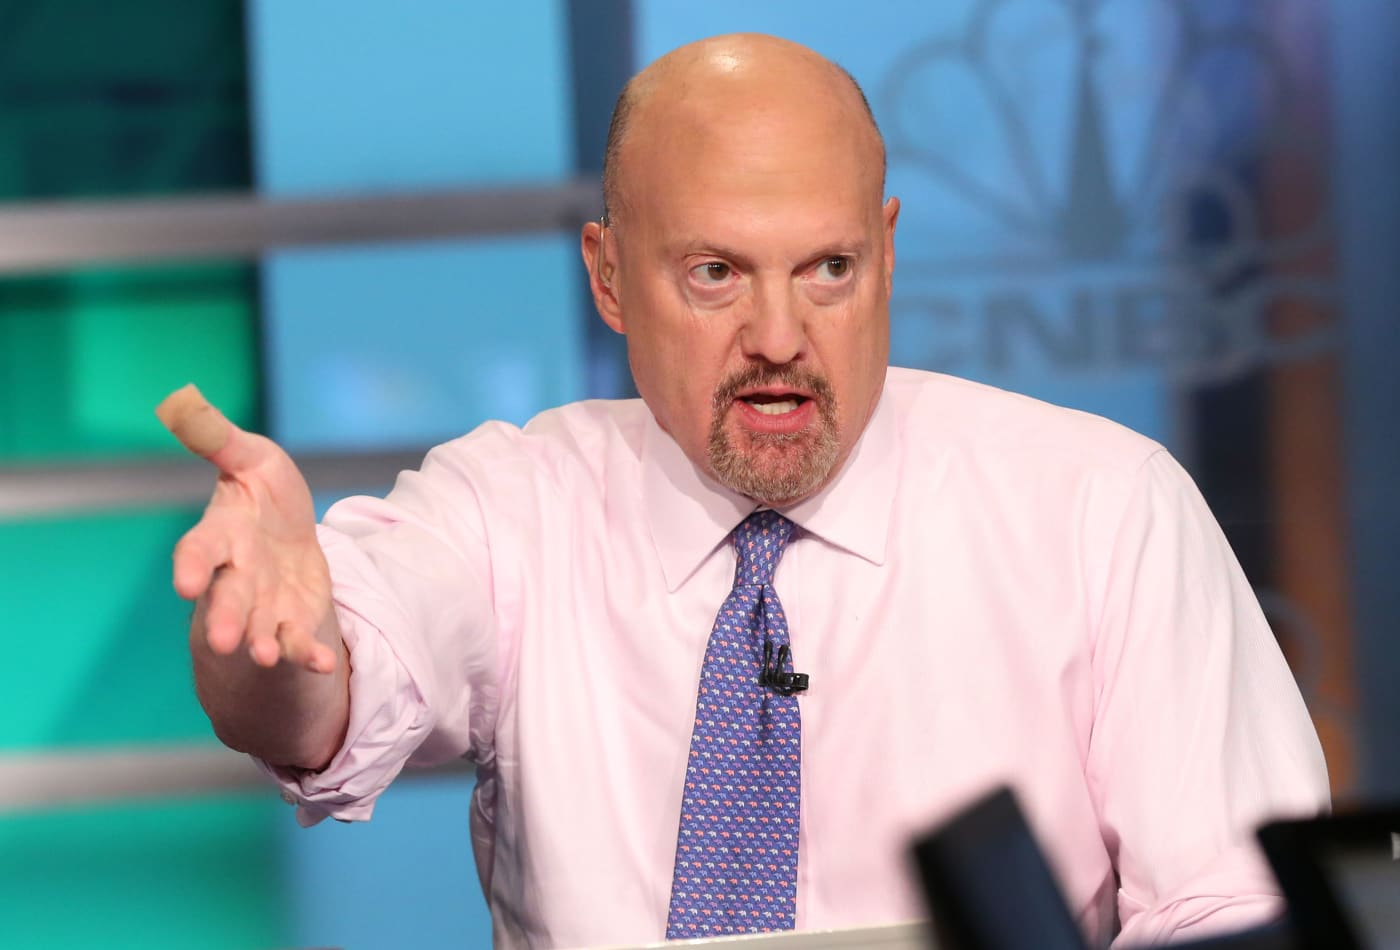 Cramer on sell-off: 'This is the panic people have been waiting for,' but don't buy stocks yet